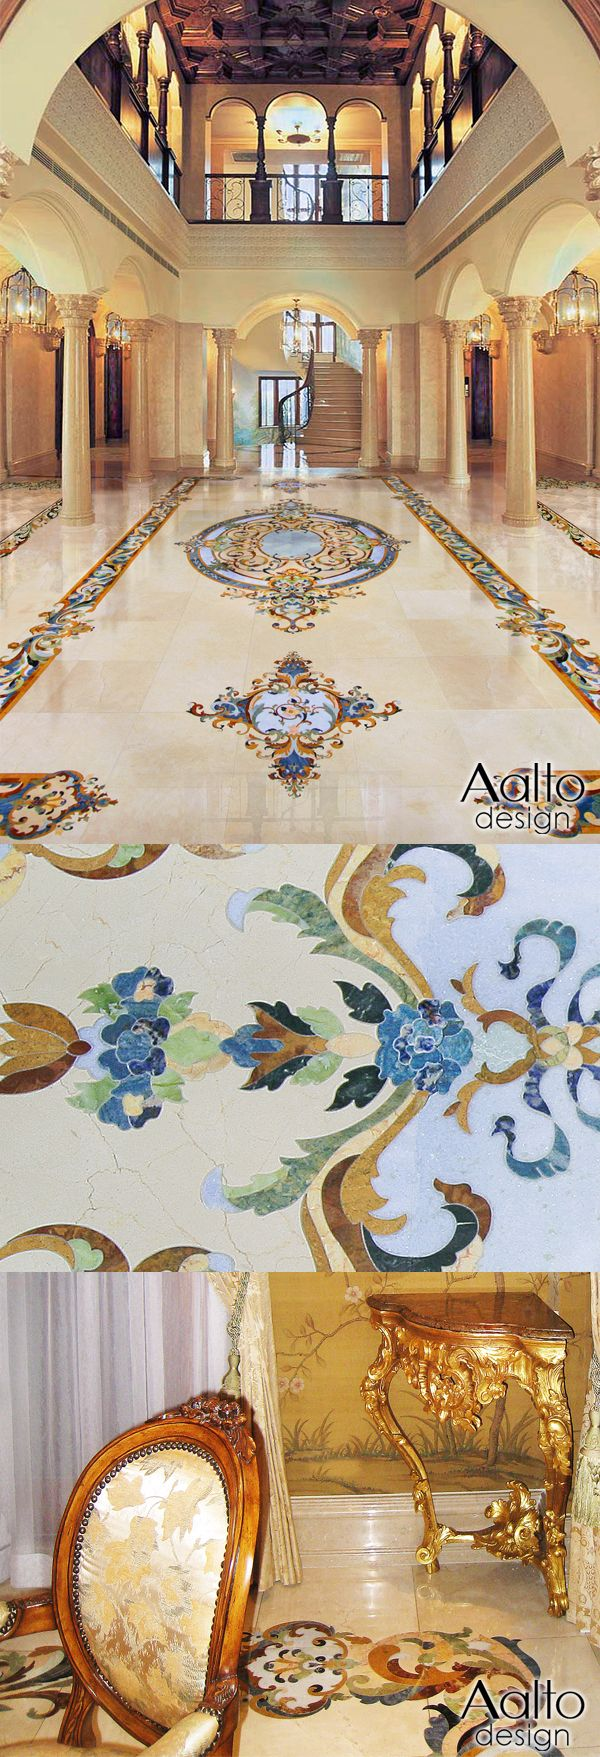 346 best water jet marble images on pinterest floor design floor luxury handcrafted marble floor and wall designs for residential and hospitality including marble medallions inlay marble foyers marble master baths dailygadgetfo Gallery